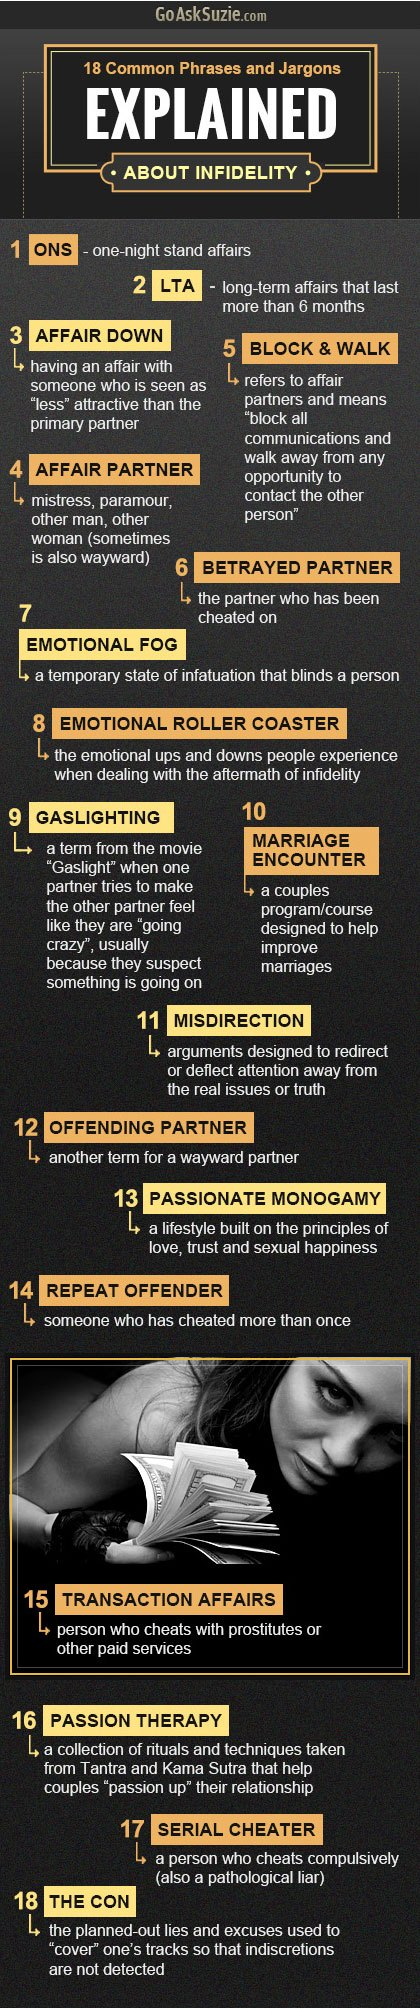 Common Phrases and Jargon About Infidelity